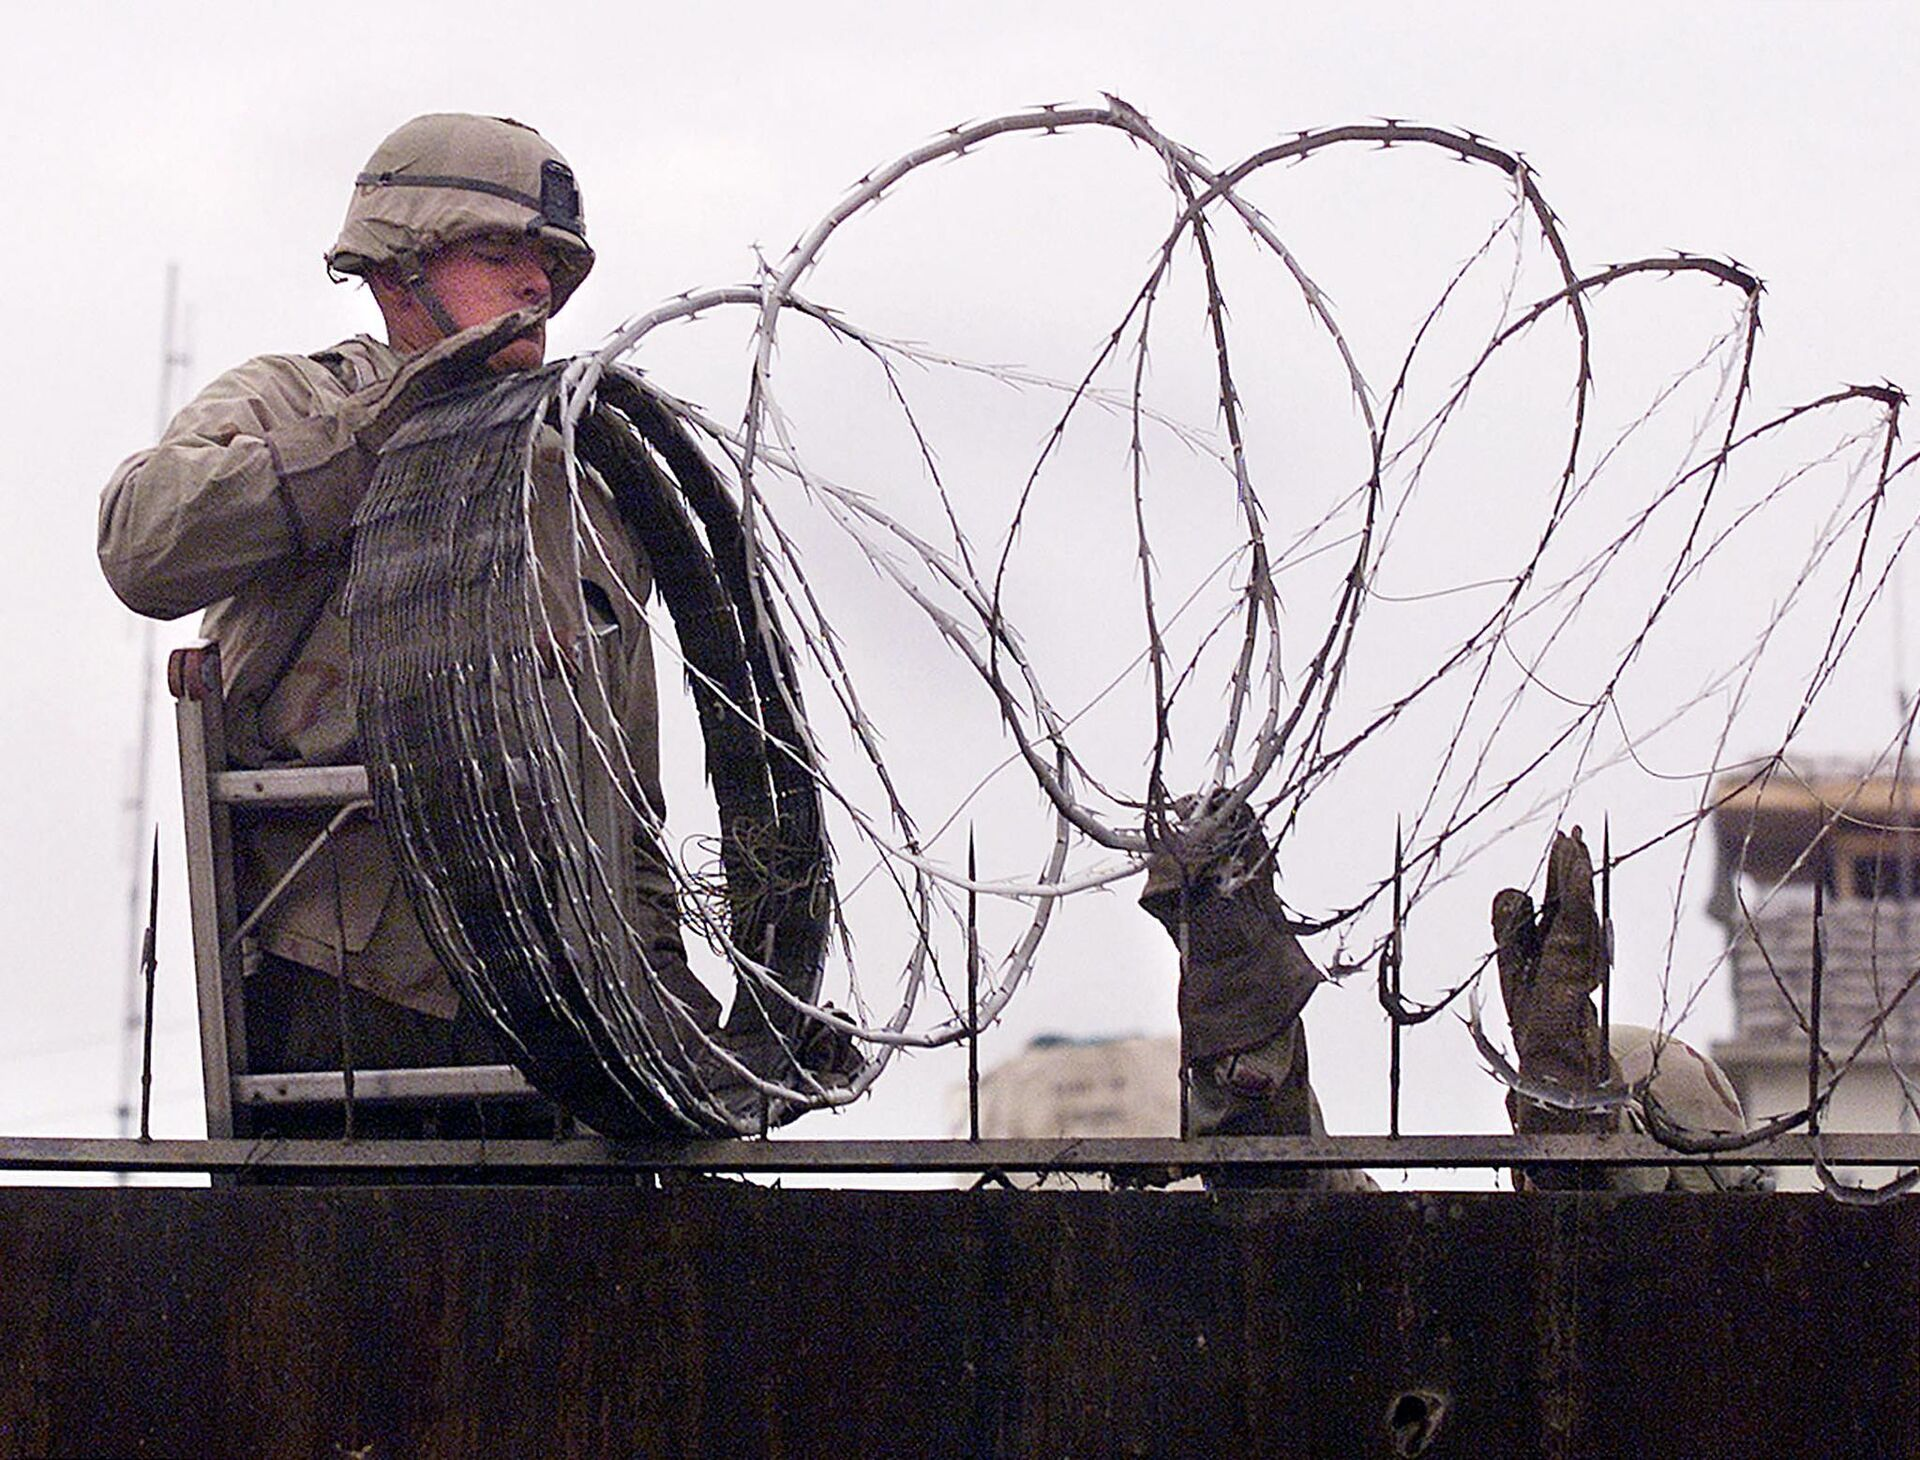 In this file photo a US Marine is given a hand using barbed wire to secure the walls the US embassy in Kabul on January 11, 2002. - The United States said on August 12, 2021 it was sending troops to the international airport in Afghanistan's capital Kabul to pull out US embassy staff as the Taliban makes rapid gains.We are further reducing our civilian footprint in Kabul in light of the evolving security situation, State Department spokesman Ned Price told reporters.This president prioritizes above all else the safety and security of Americans who are serving overseas, he said of Joe Biden, who has ordered a withdrawal of US troops from Afghanistan after nearly 20 years. - Sputnik International, 1920, 07.09.2021